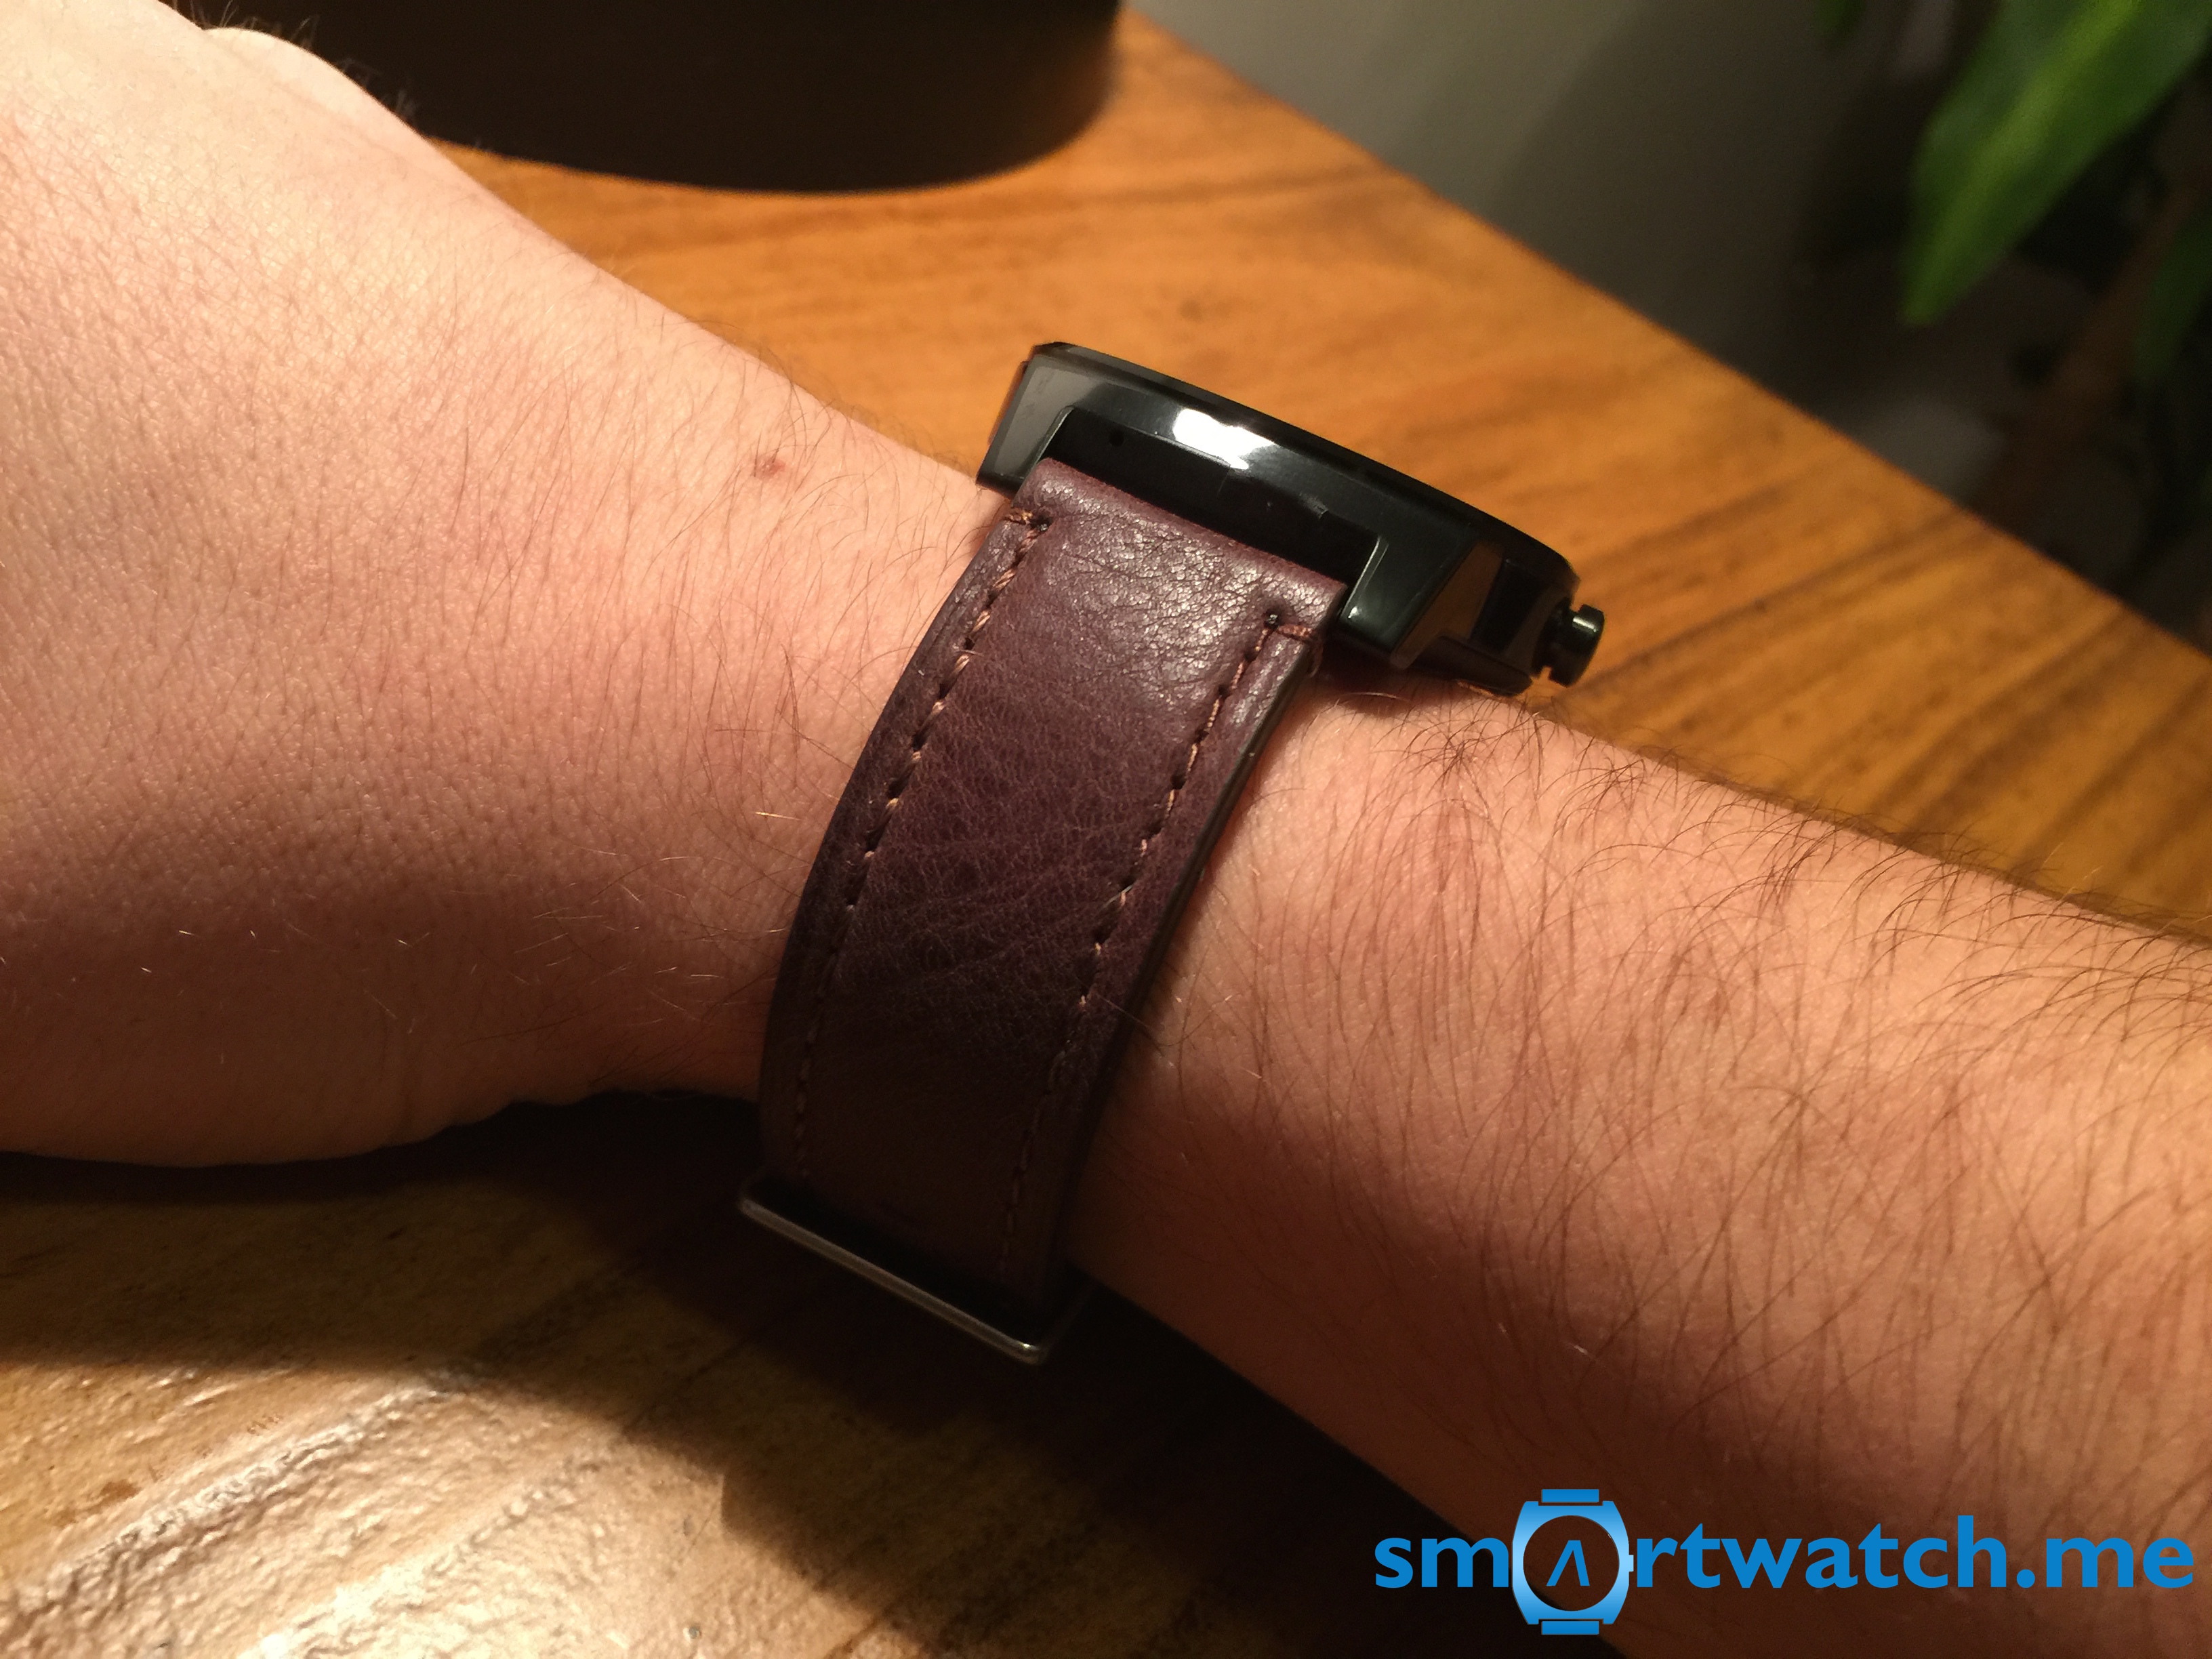 d5ca8bbbf LG-G-Watch-R-Brown-Leather-Replacement-Band-Strap-Wrist.JPG3264x2448 1.94 MB